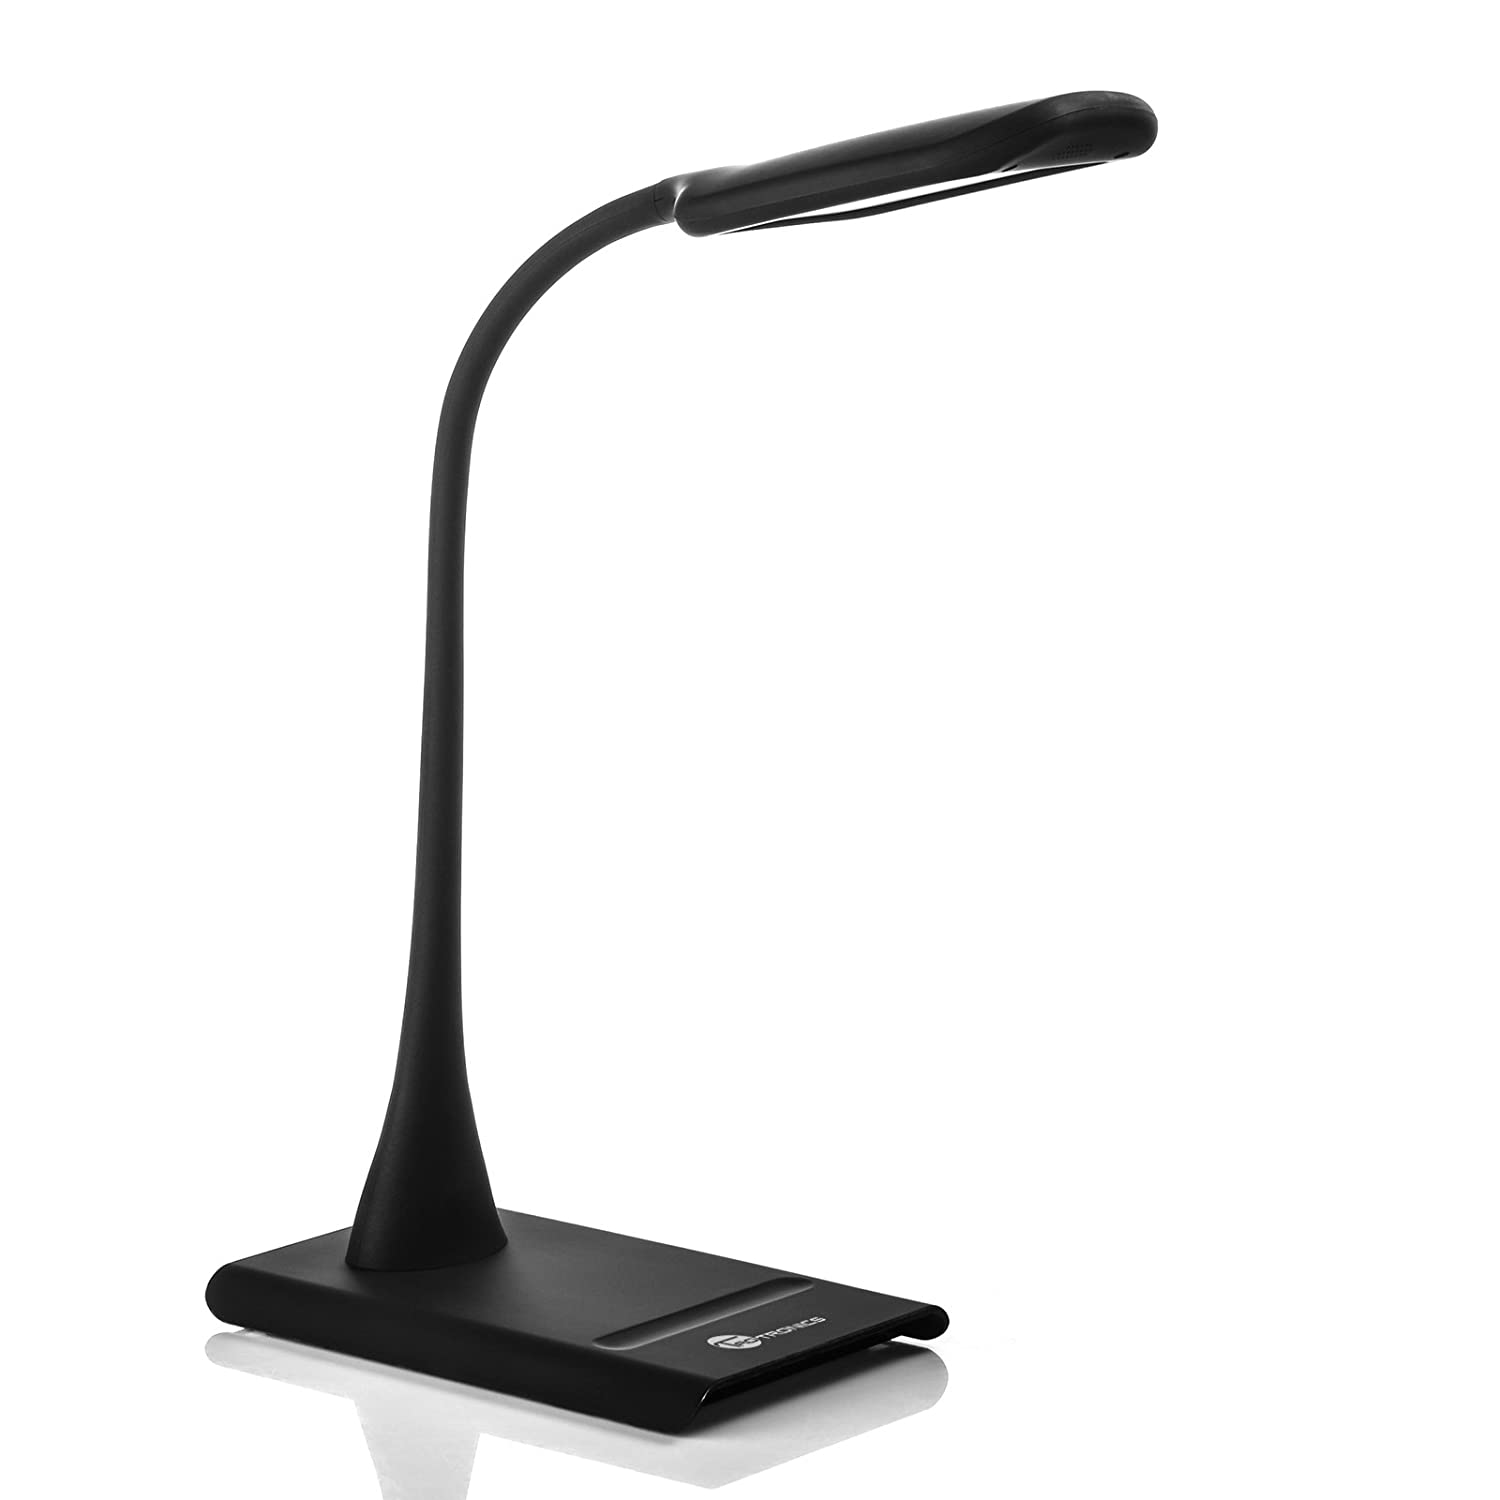 Desk Light Amazon: These Are Amazon's 11 Best Deals Of The Day